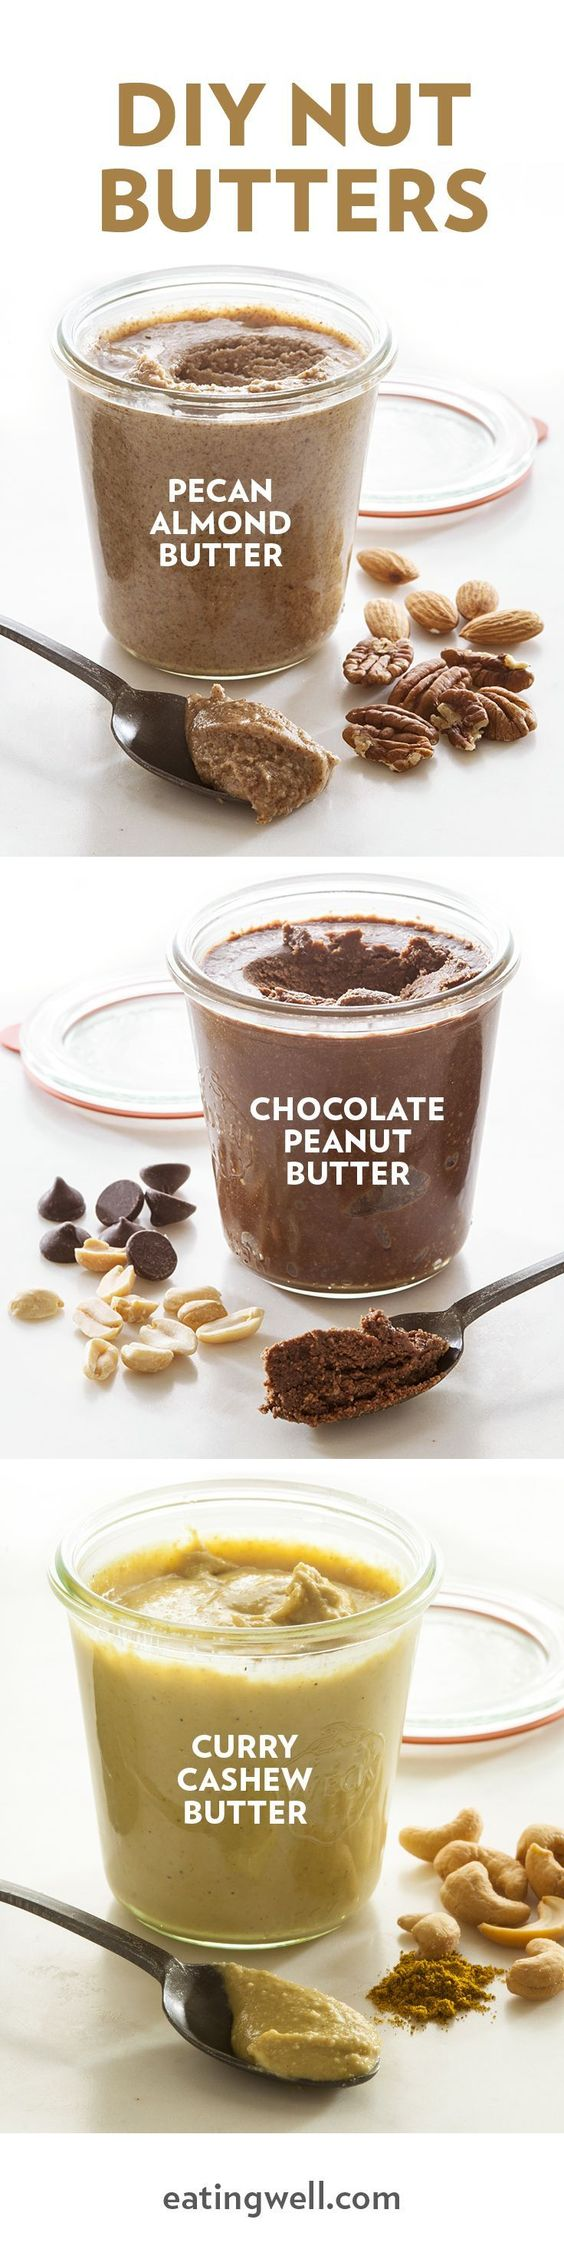 Delicious DIY nut butter recipes for no-nut butter, almond butter, cashew butter and more! With a food processor, toasted nuts and just a few other ingredients, you can whirl up a healthy treat worth spreading around. Try our homemade nut butters on toast, whizzed into a smoothie or for a treat right off the spoon. If you have a nut allergy or need to pack nut-free lunches, you'll love our easy recipe for homemade no-nut butter.